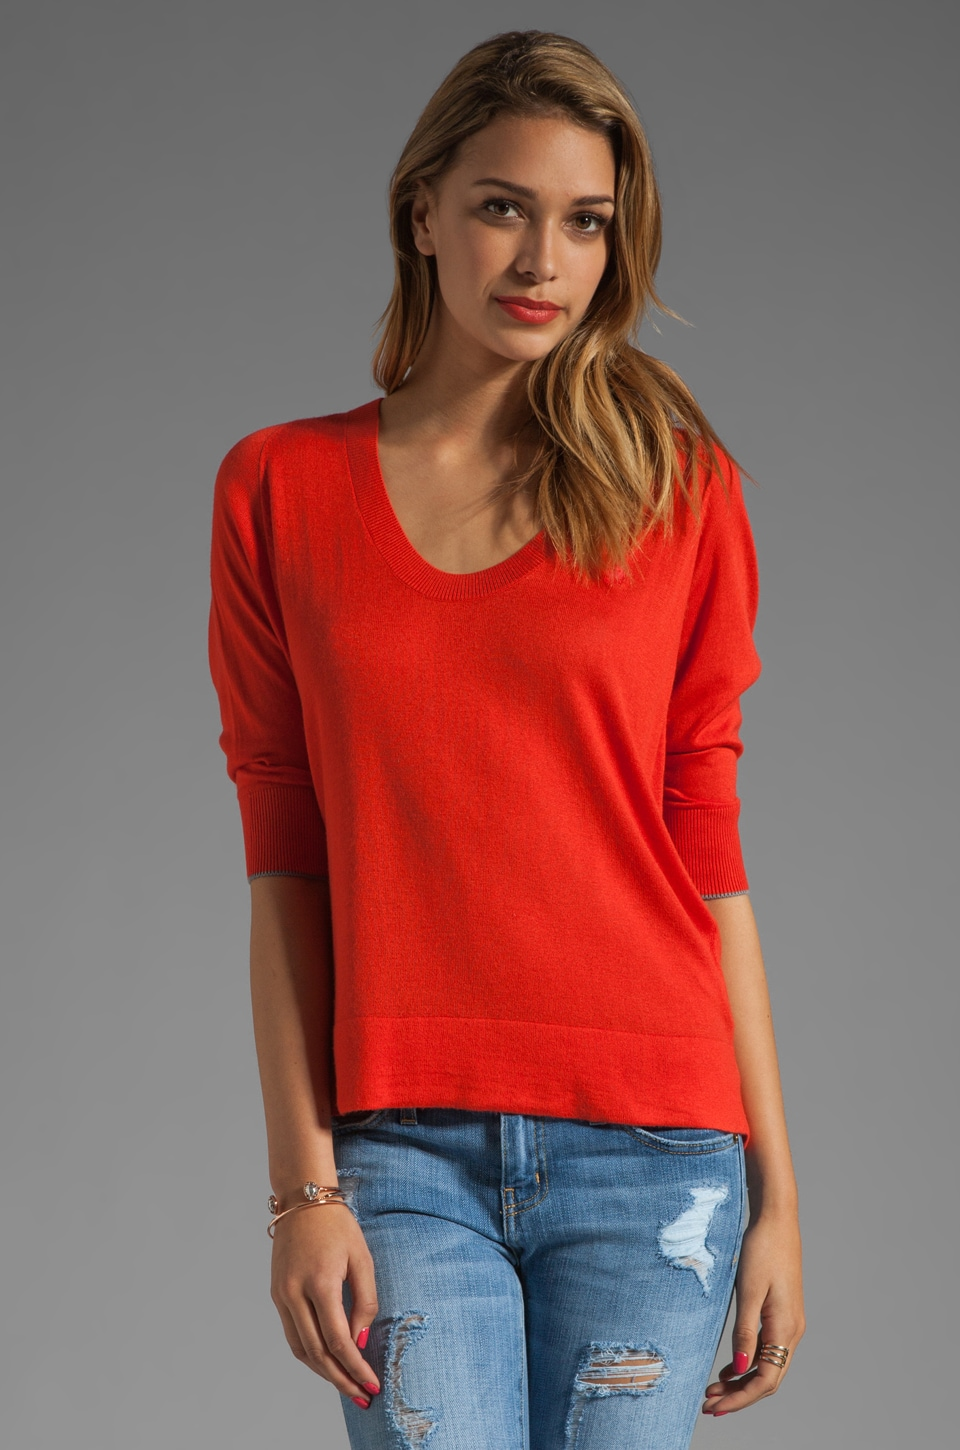 G-Star New Blast 3/4 Sleeve Knit in Scarlet